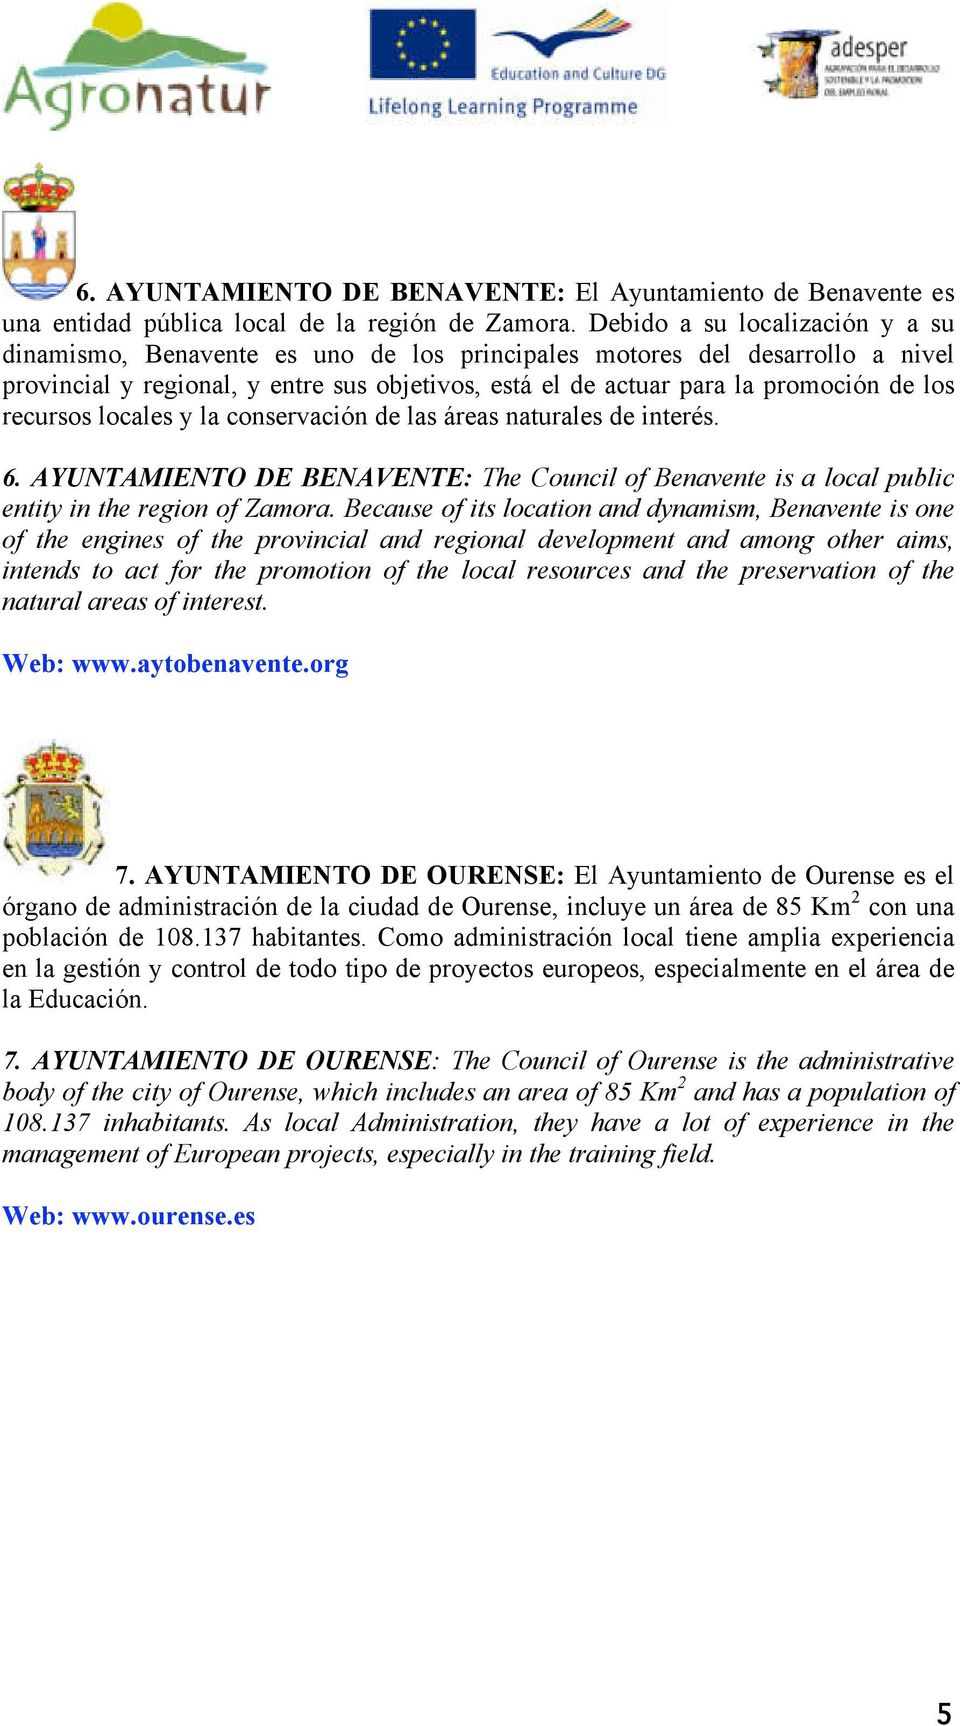 recursos locales y la conservación de las áreas naturales de interés. 6. AYUNTAMIENTO DE BENAVENTE: The Council of Benavente is a local public entity in the region of Zamora.